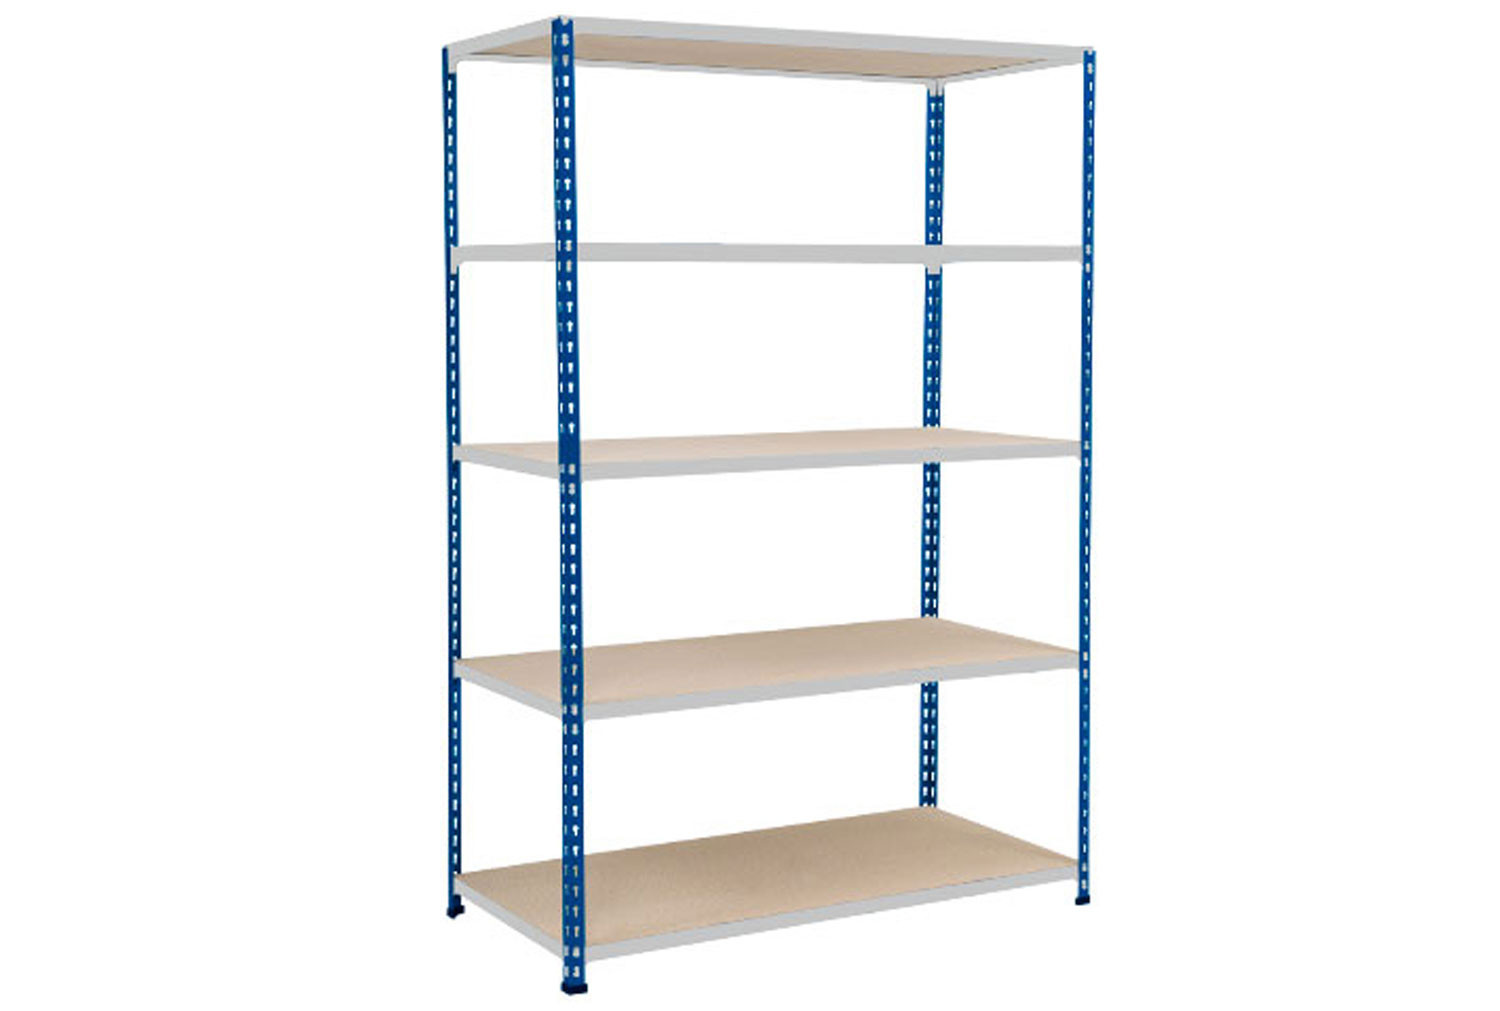 Rapid 2 Shelving With 5 Chipboard Shelves 1525wx1600h (Blue/Grey)